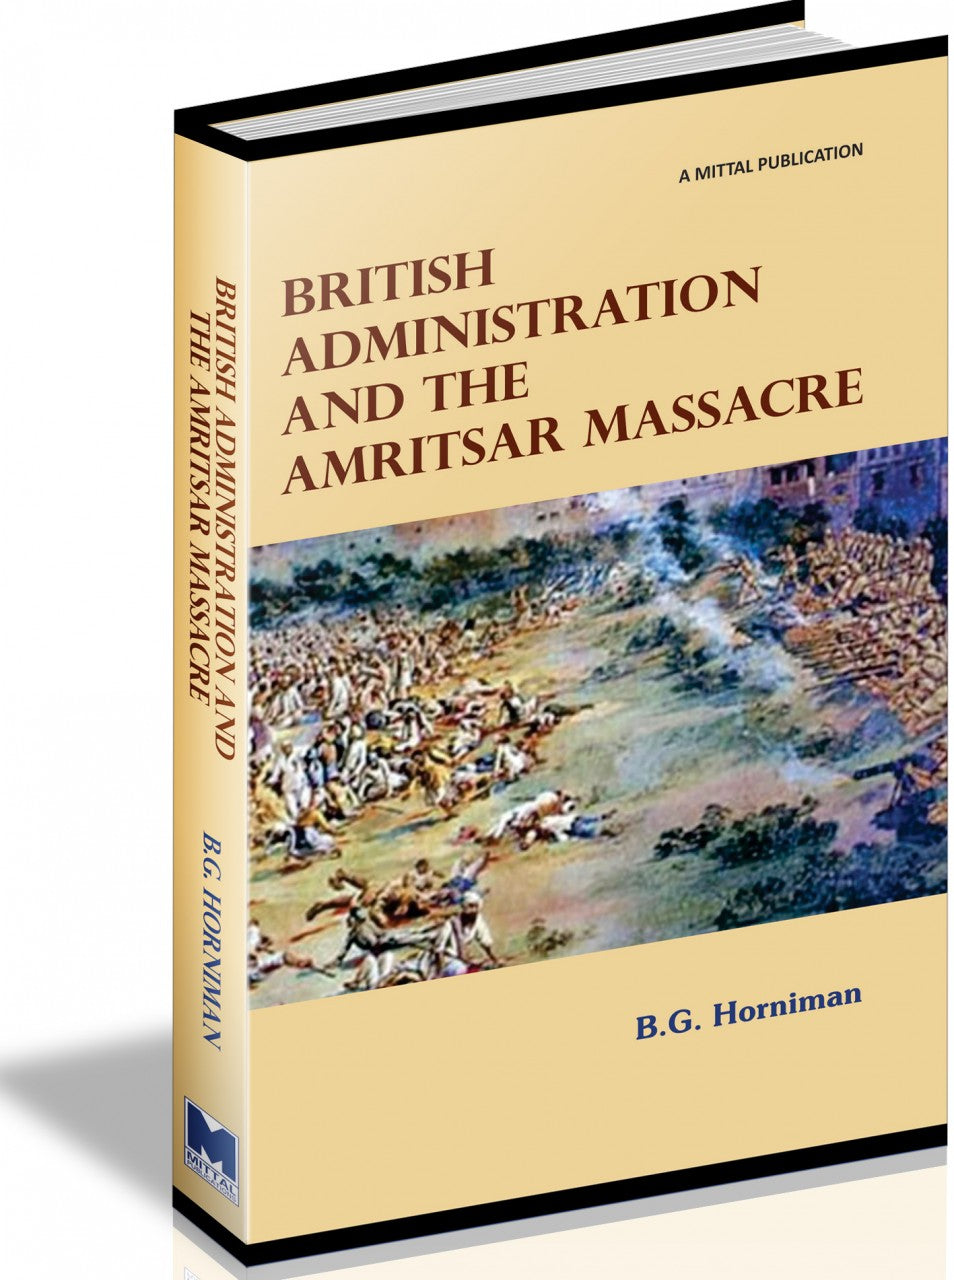 British Administration and The Amritsar Massacre